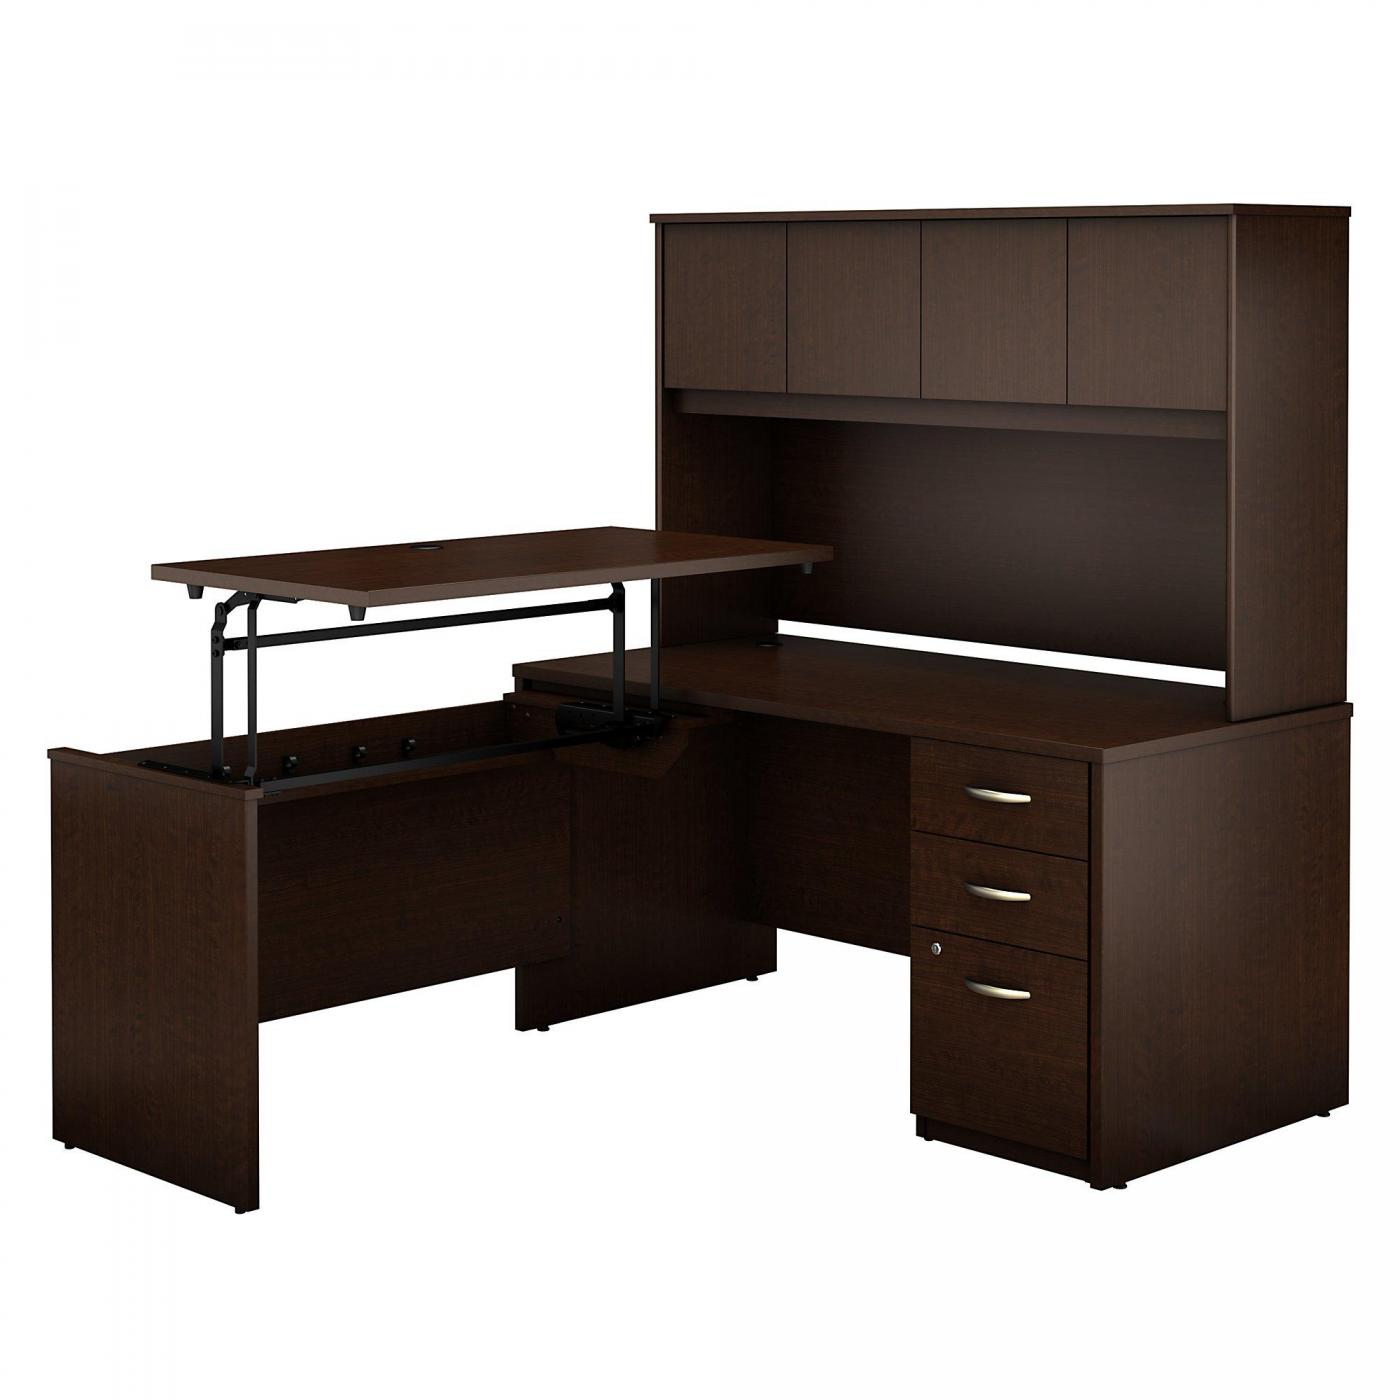 <font color=#c60><b>BUSH BUSINESS FURNITURE SERIES C ELITE 60W X 30D 3 POSITION SIT TO STAND L SHAPED DESK WITH HUTCH AND 3 DRAWER FILE CABINET. FREE SHIPPING</font></b>